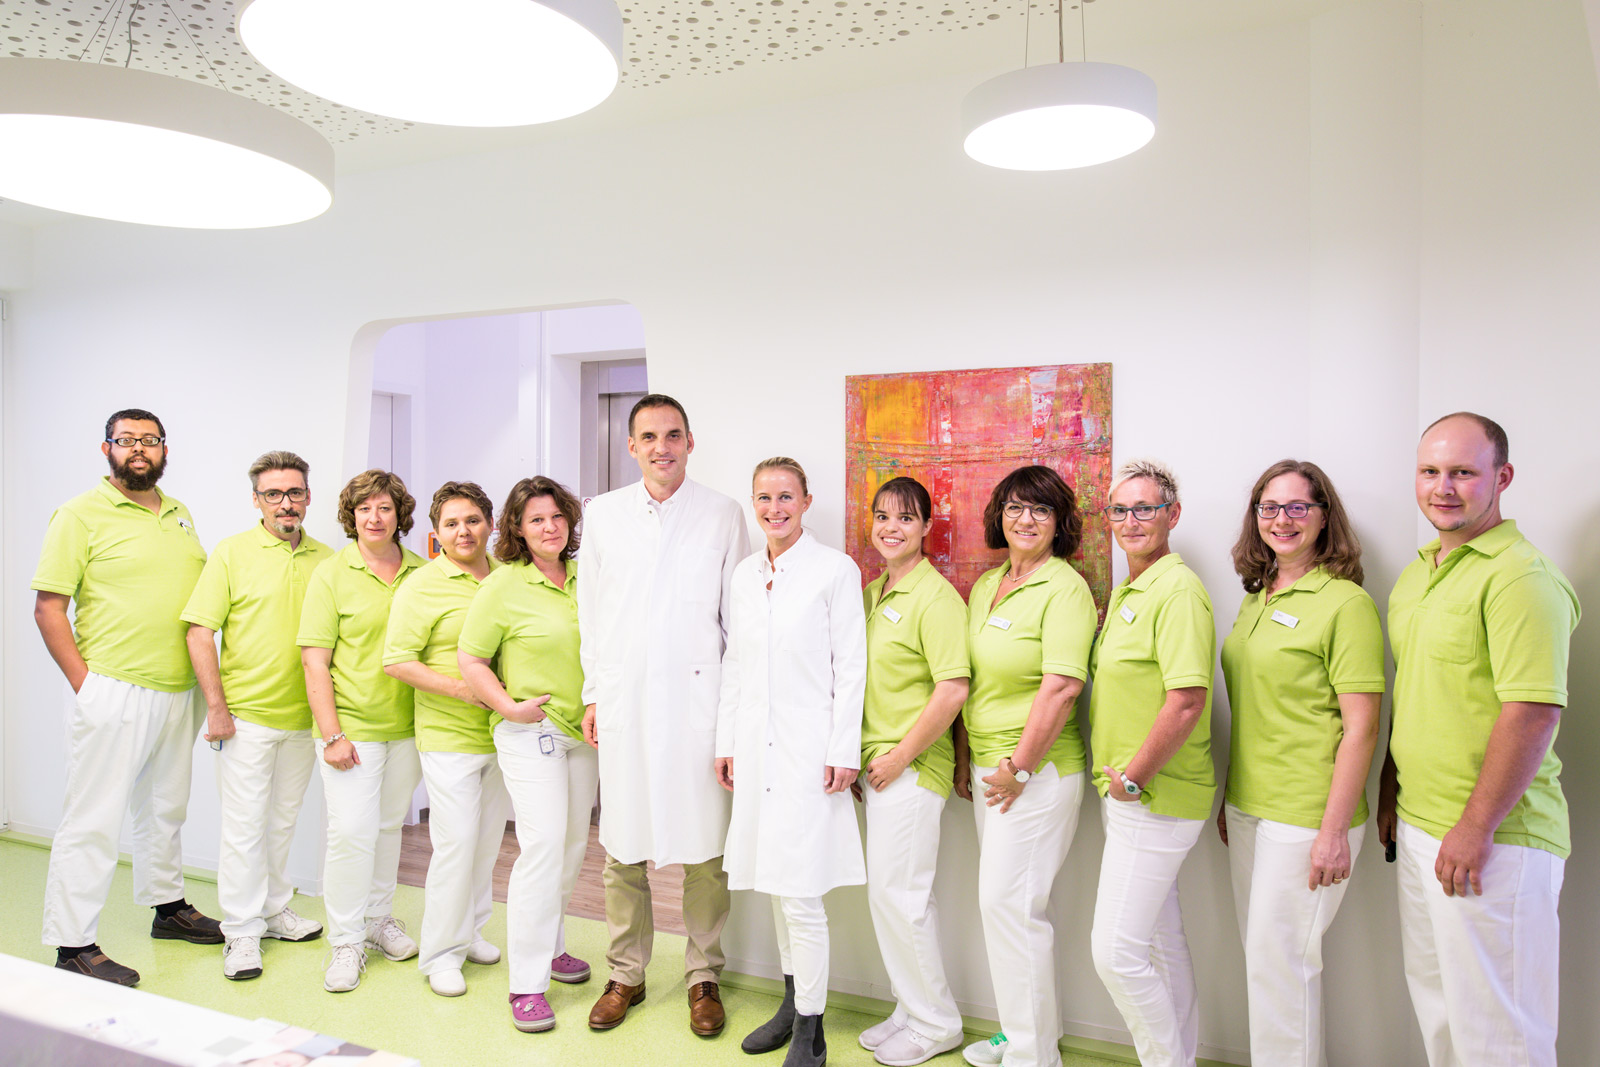 Teamfoto Arztpraxis Strahlentherapie Dr. Staab